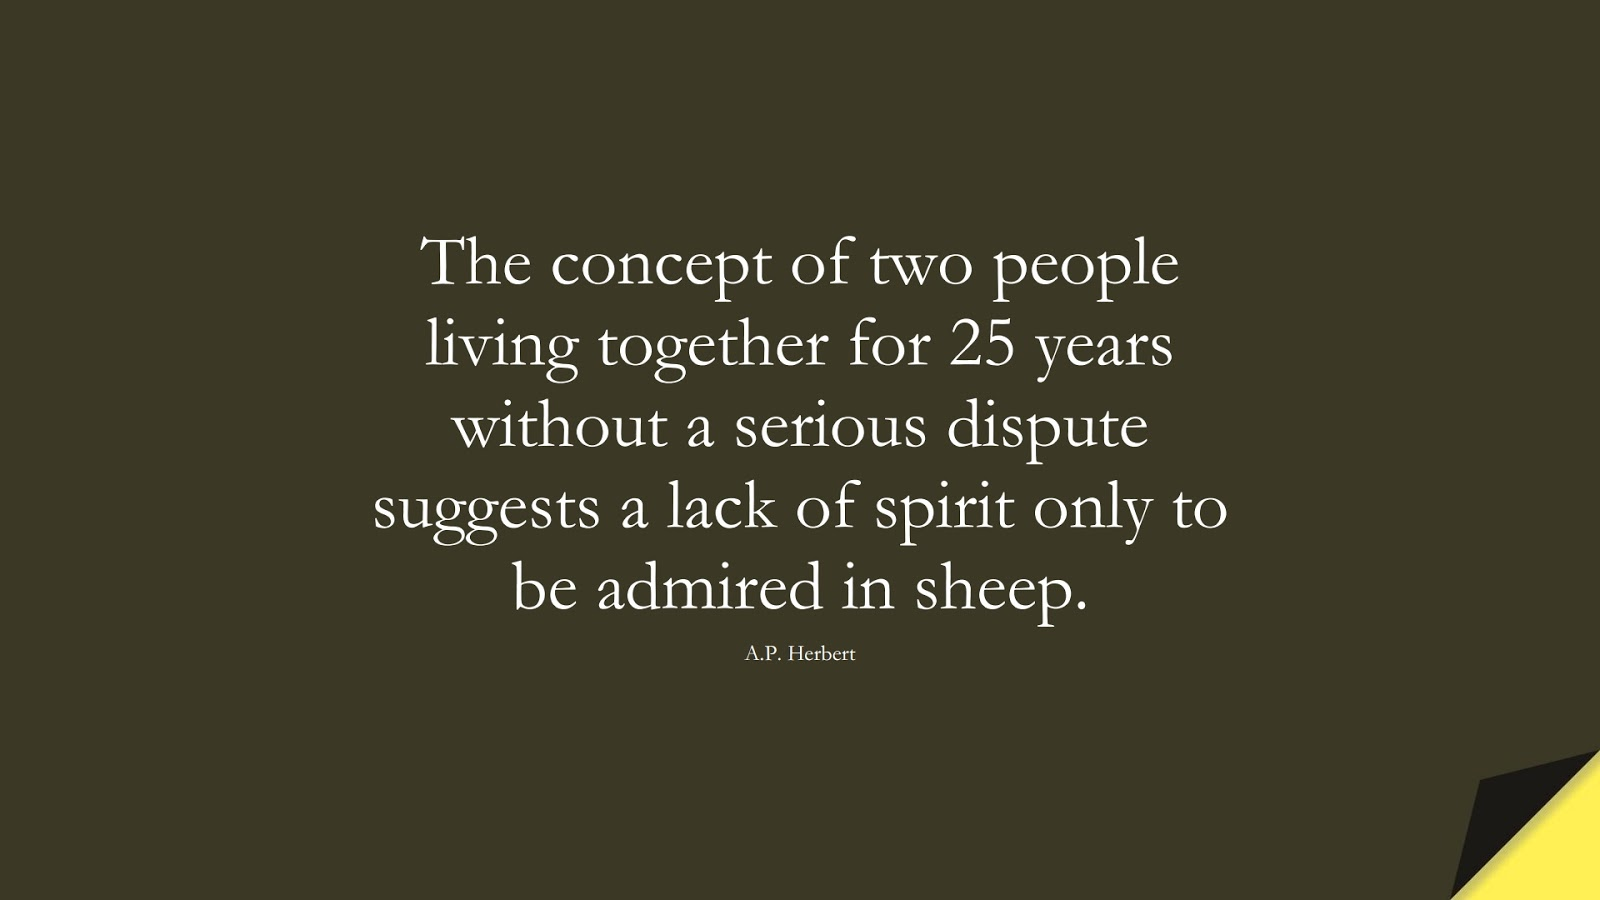 The concept of two people living together for 25 years without a serious dispute suggests a lack of spirit only to be admired in sheep. (A.P. Herbert);  #RelationshipQuotes